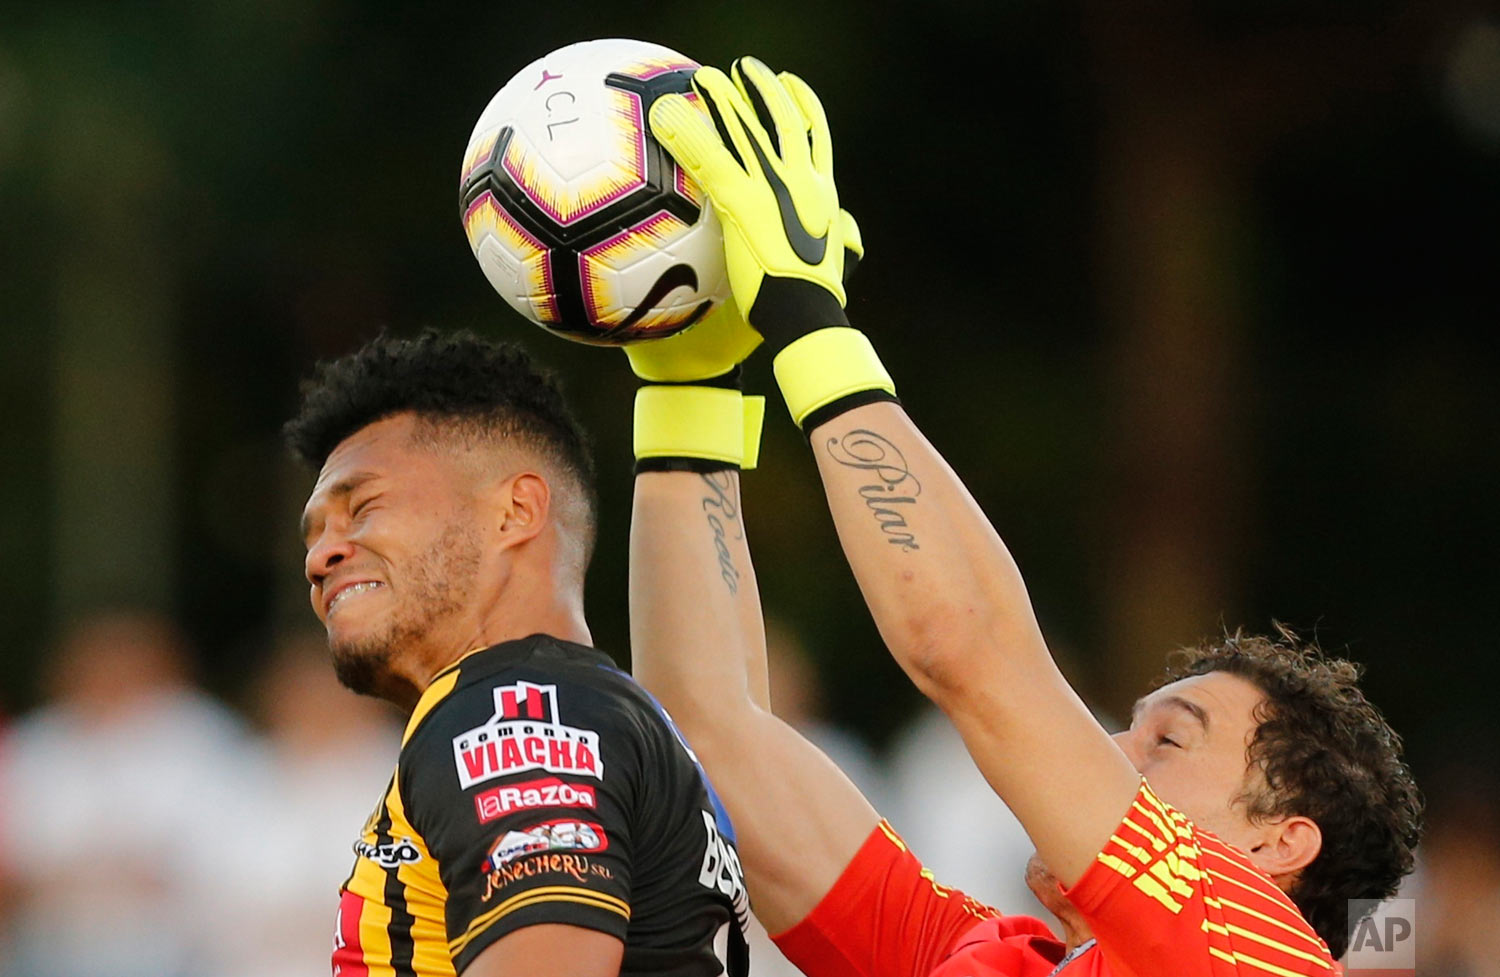 Paraguay's Libertad goalkeeper Martin Silva catches the ball preventing Bolivia's The Strongest Rolando Blackburn from heading the ball during a Copa Libertadores soccer game, in Asuncion, Paraguay, Feb. 13, 2019. (AP Photo/Jorge Saenz)